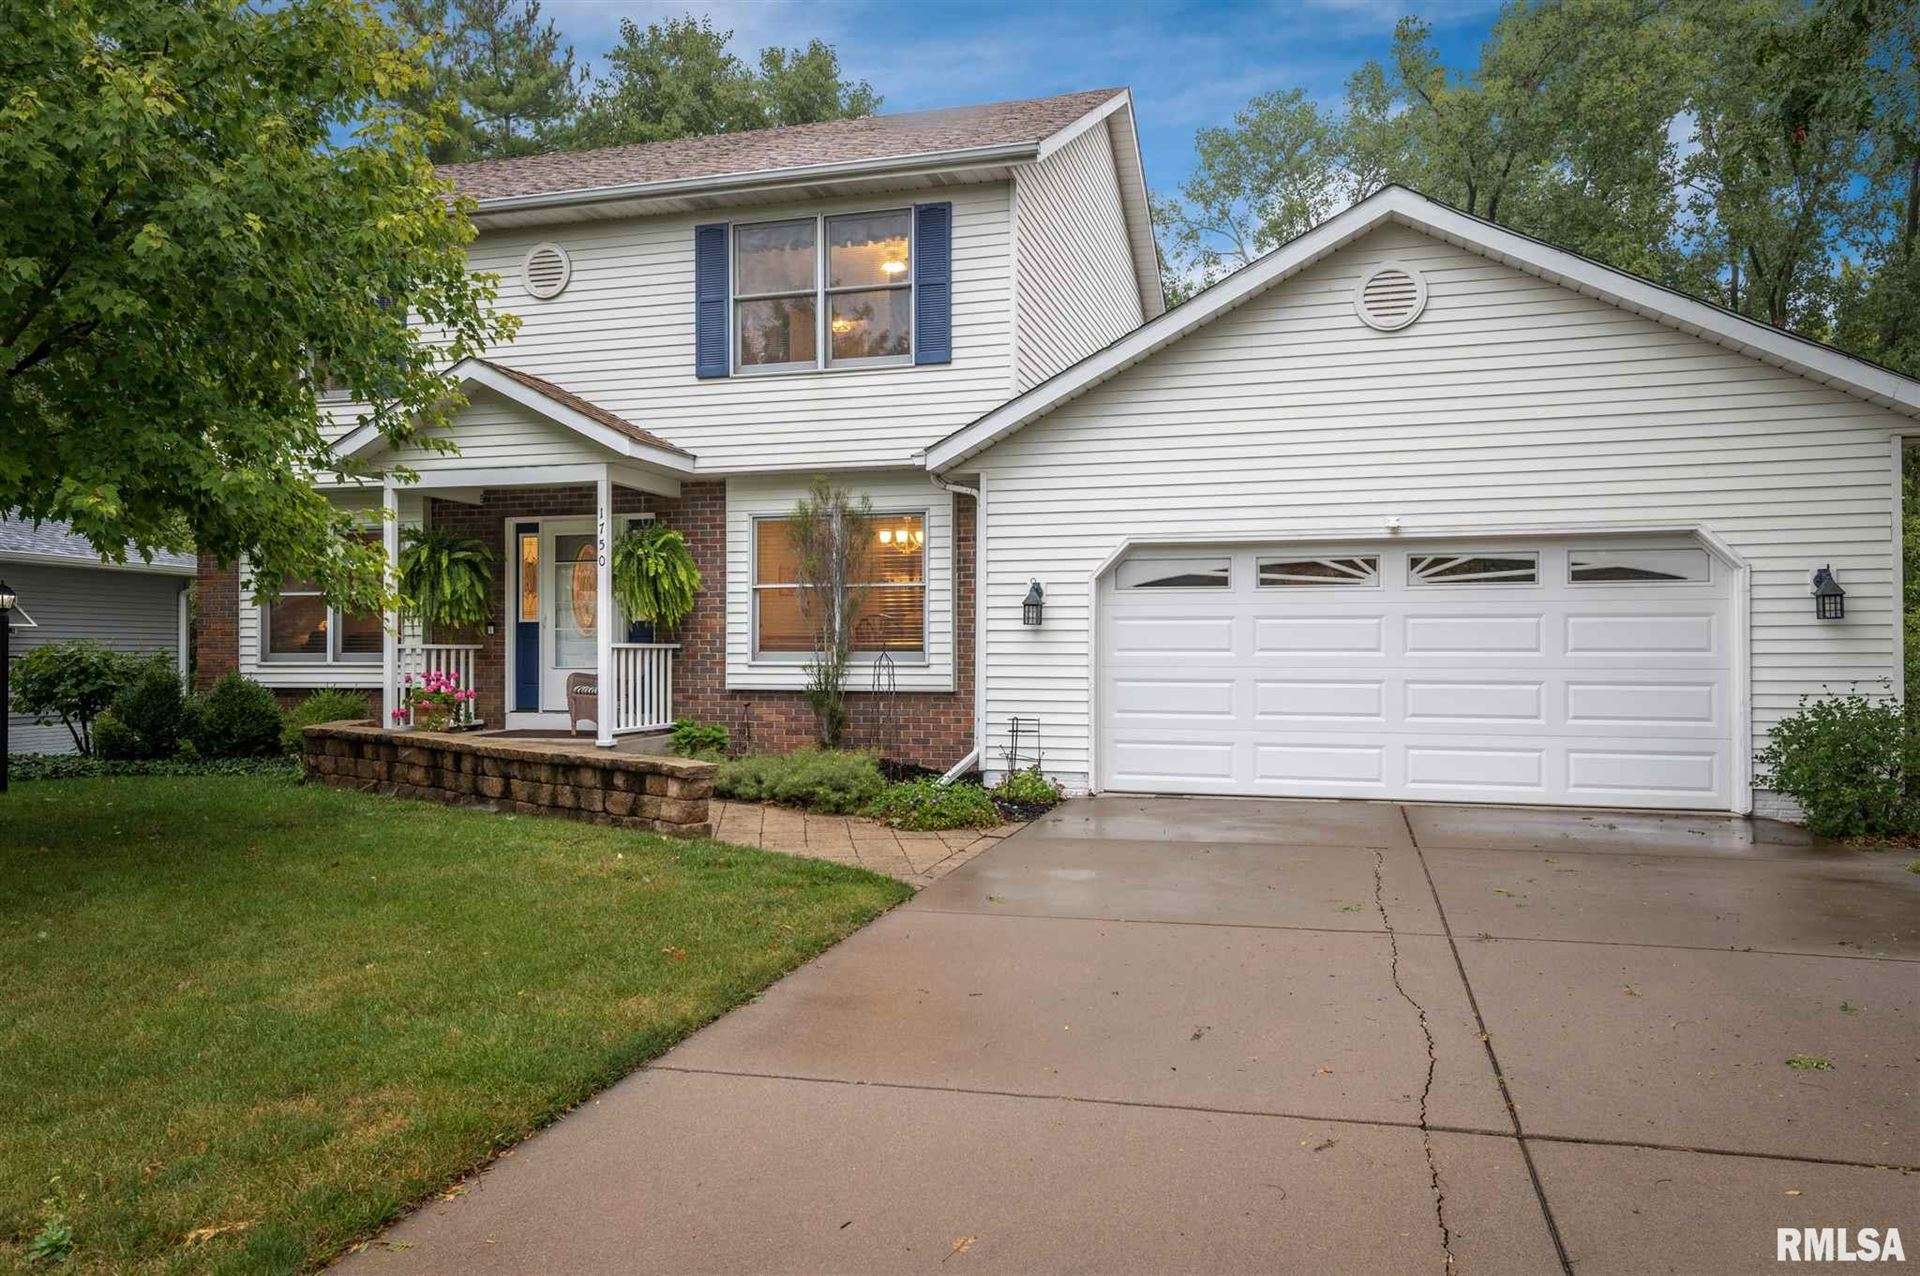 1750 PRAIRIE VISTA Circle, Bettendorf, IA 52722 - MLS#: QC4215126